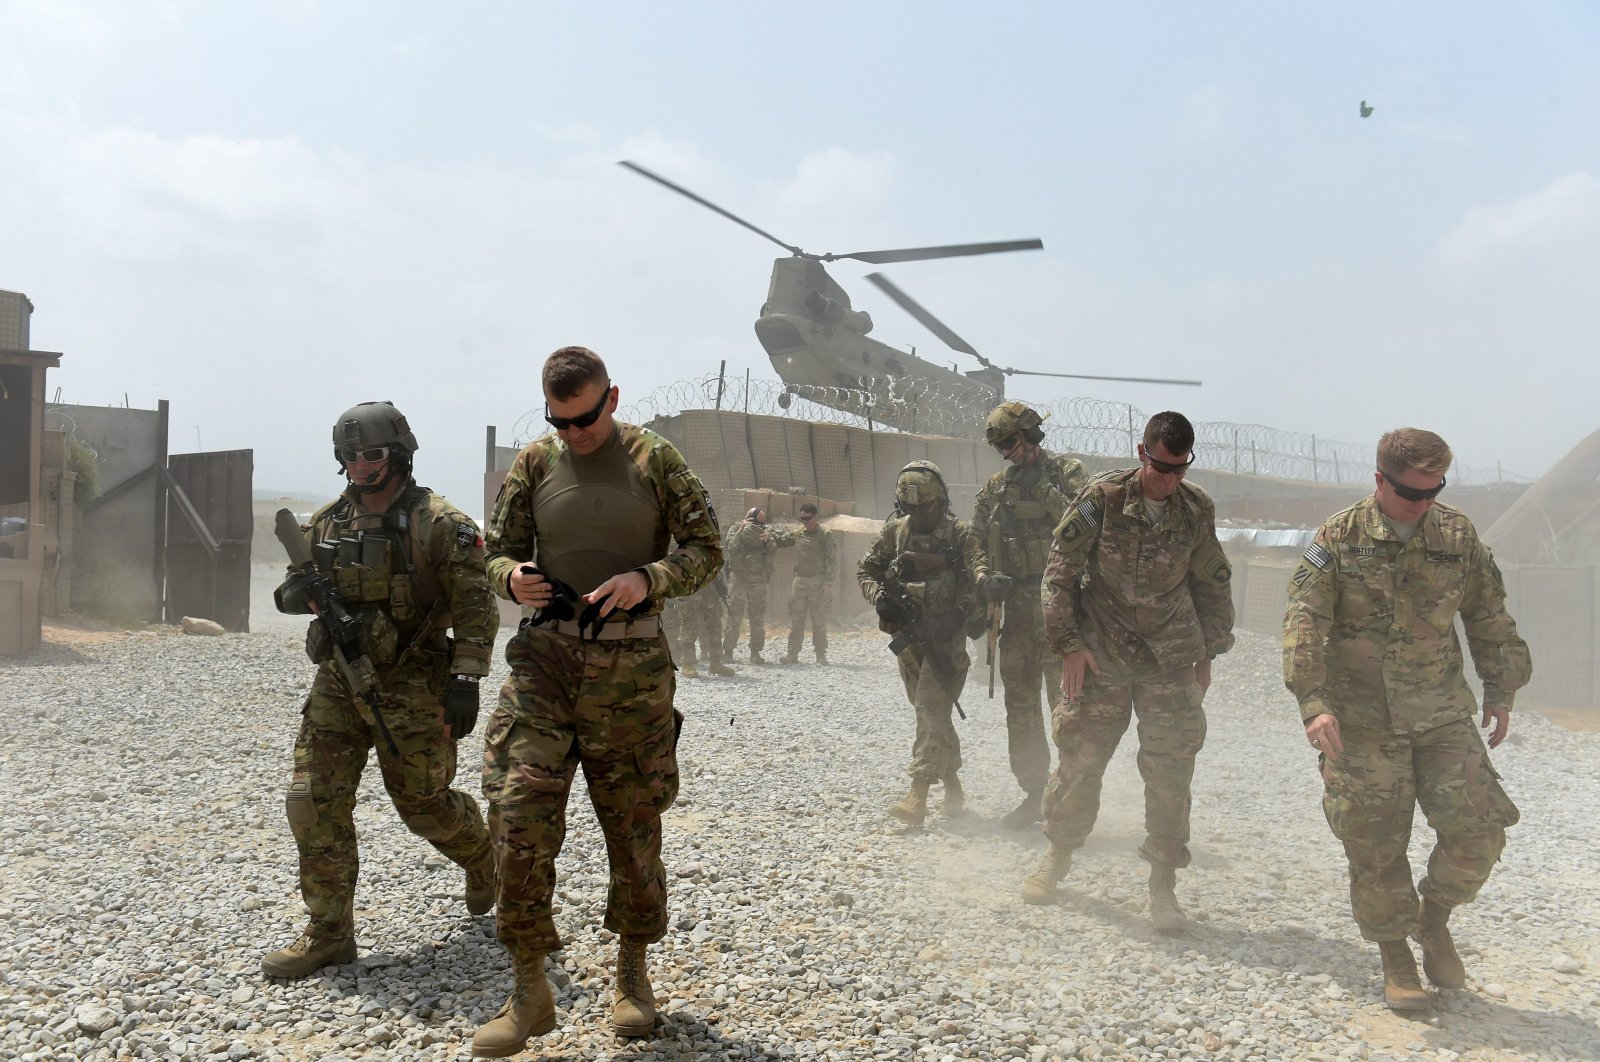 U.S. Army soldiers walk as a NATO helicopter flies overhead at coalition force Forward Operating Base (FOB) Connelly in the Khogyani district in the eastern province of Nangarhar Aug. 13, 2015. (AFP Photo)